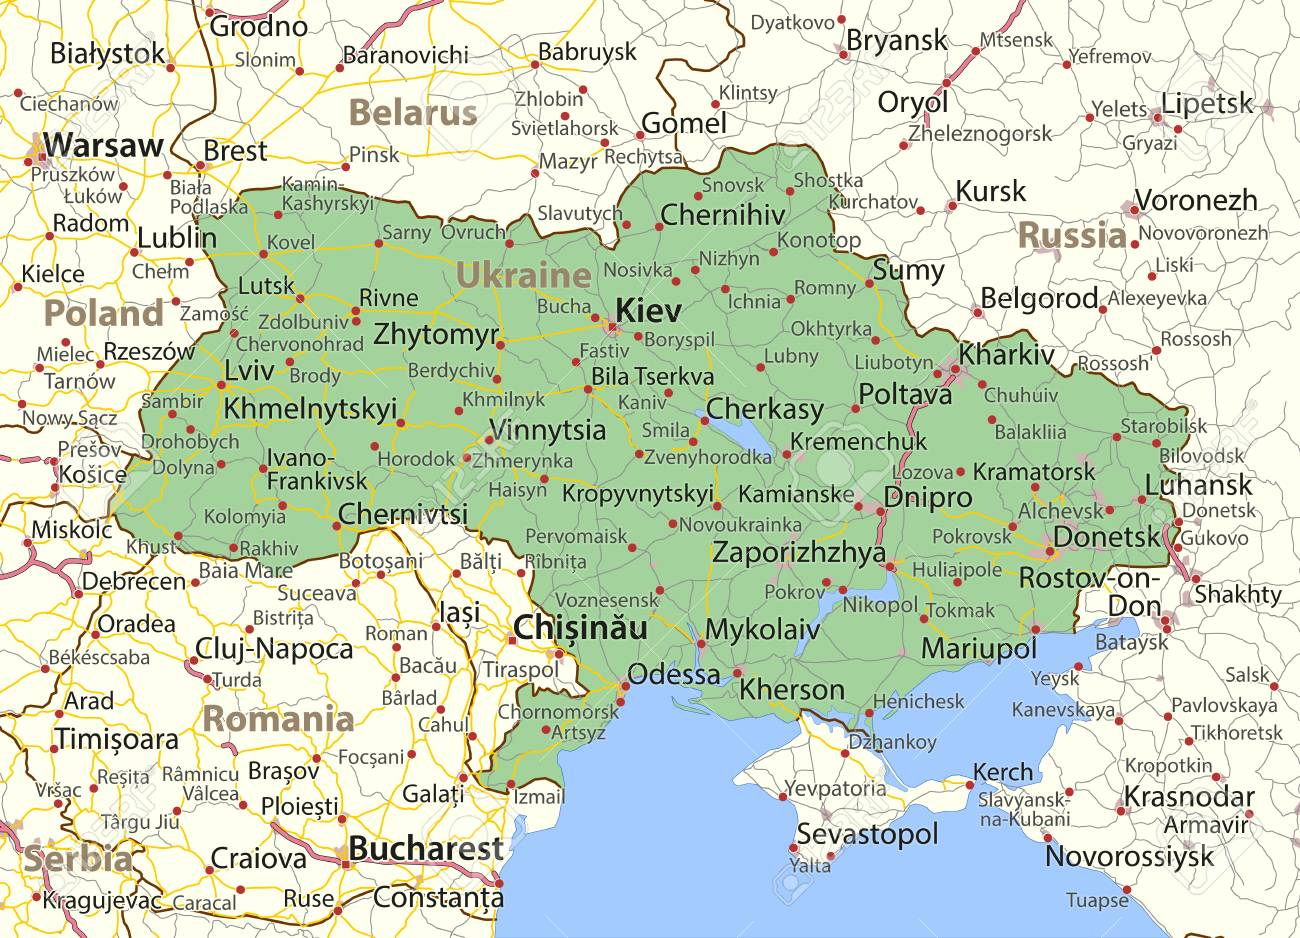 Map of Ukraine. Shows country borders, urban areas, place names..